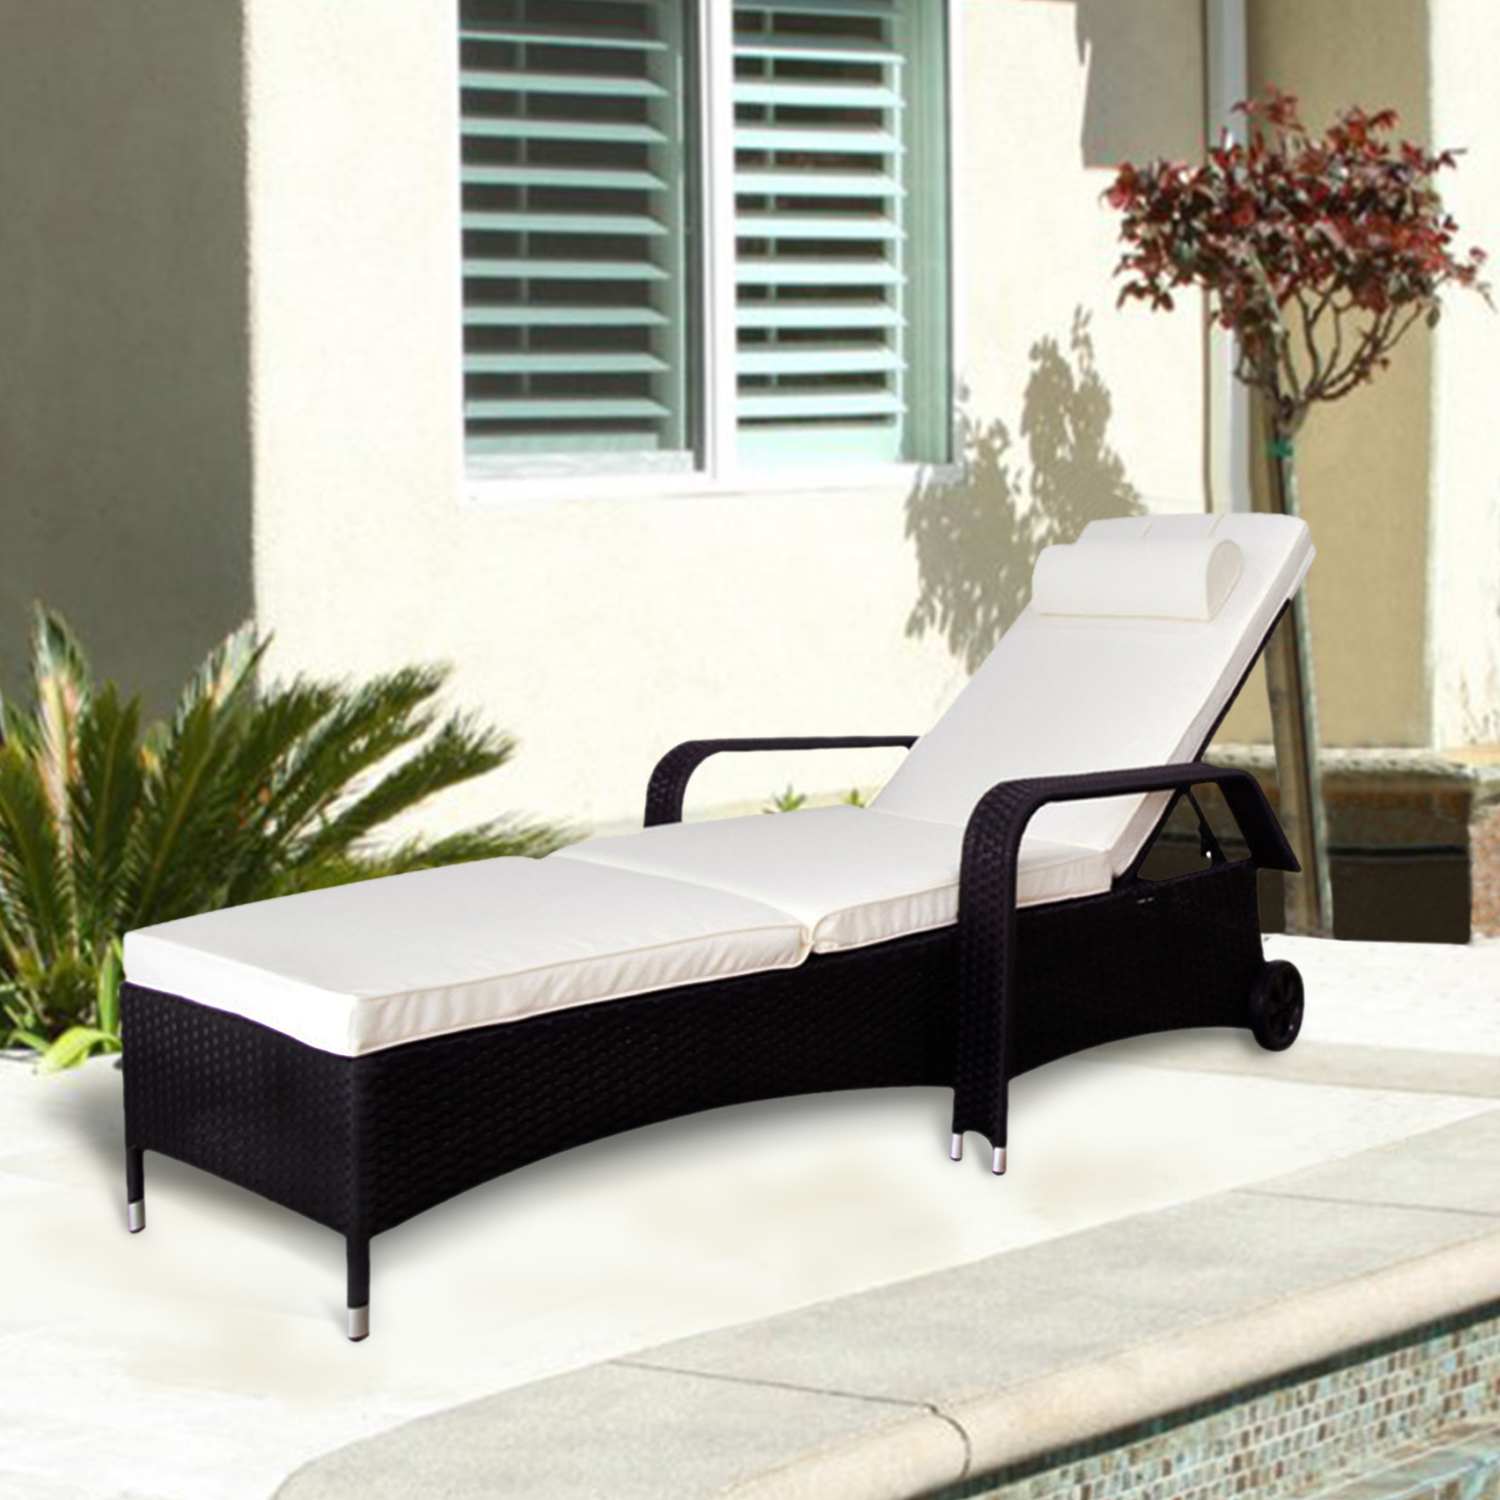 Kinbor Outdoor Recliner Black PE Wicker Patio Chaise Lounge Chair Furniture w/Sliding Tray